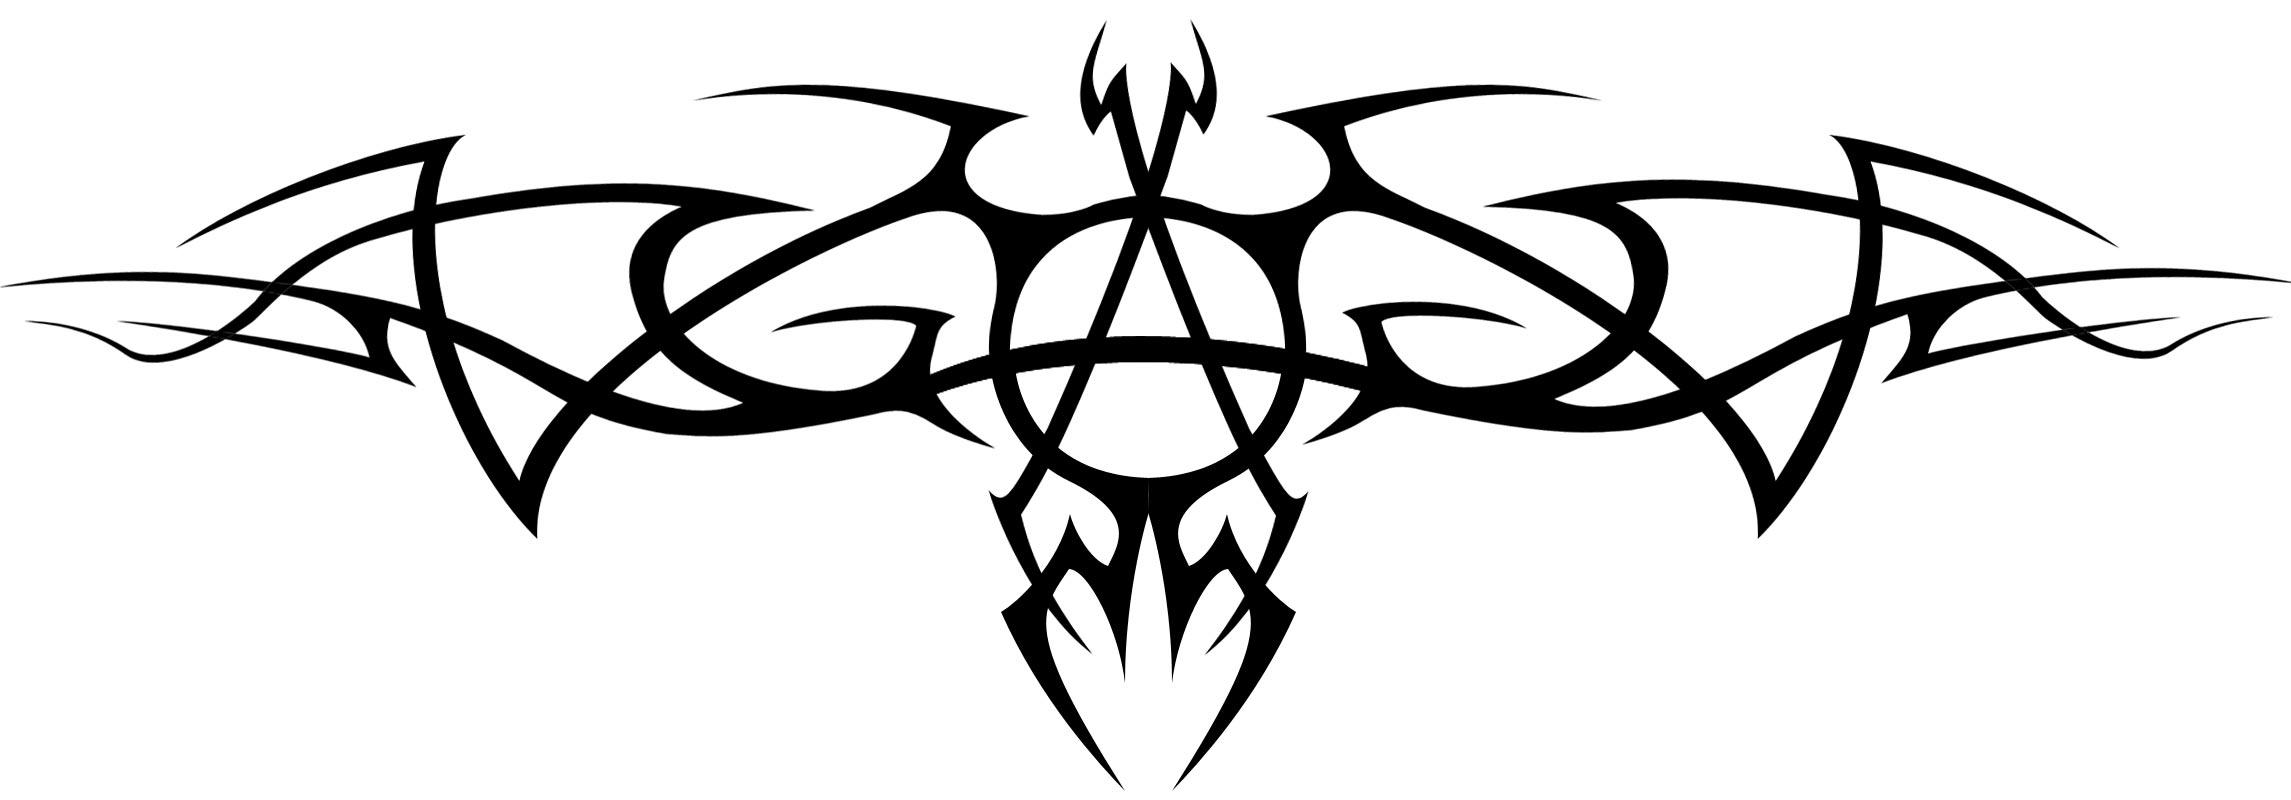 Anarchy symbol by punkasf531 on deviantart anarchy tribal by insomnia maniac biocorpaavc Choice Image